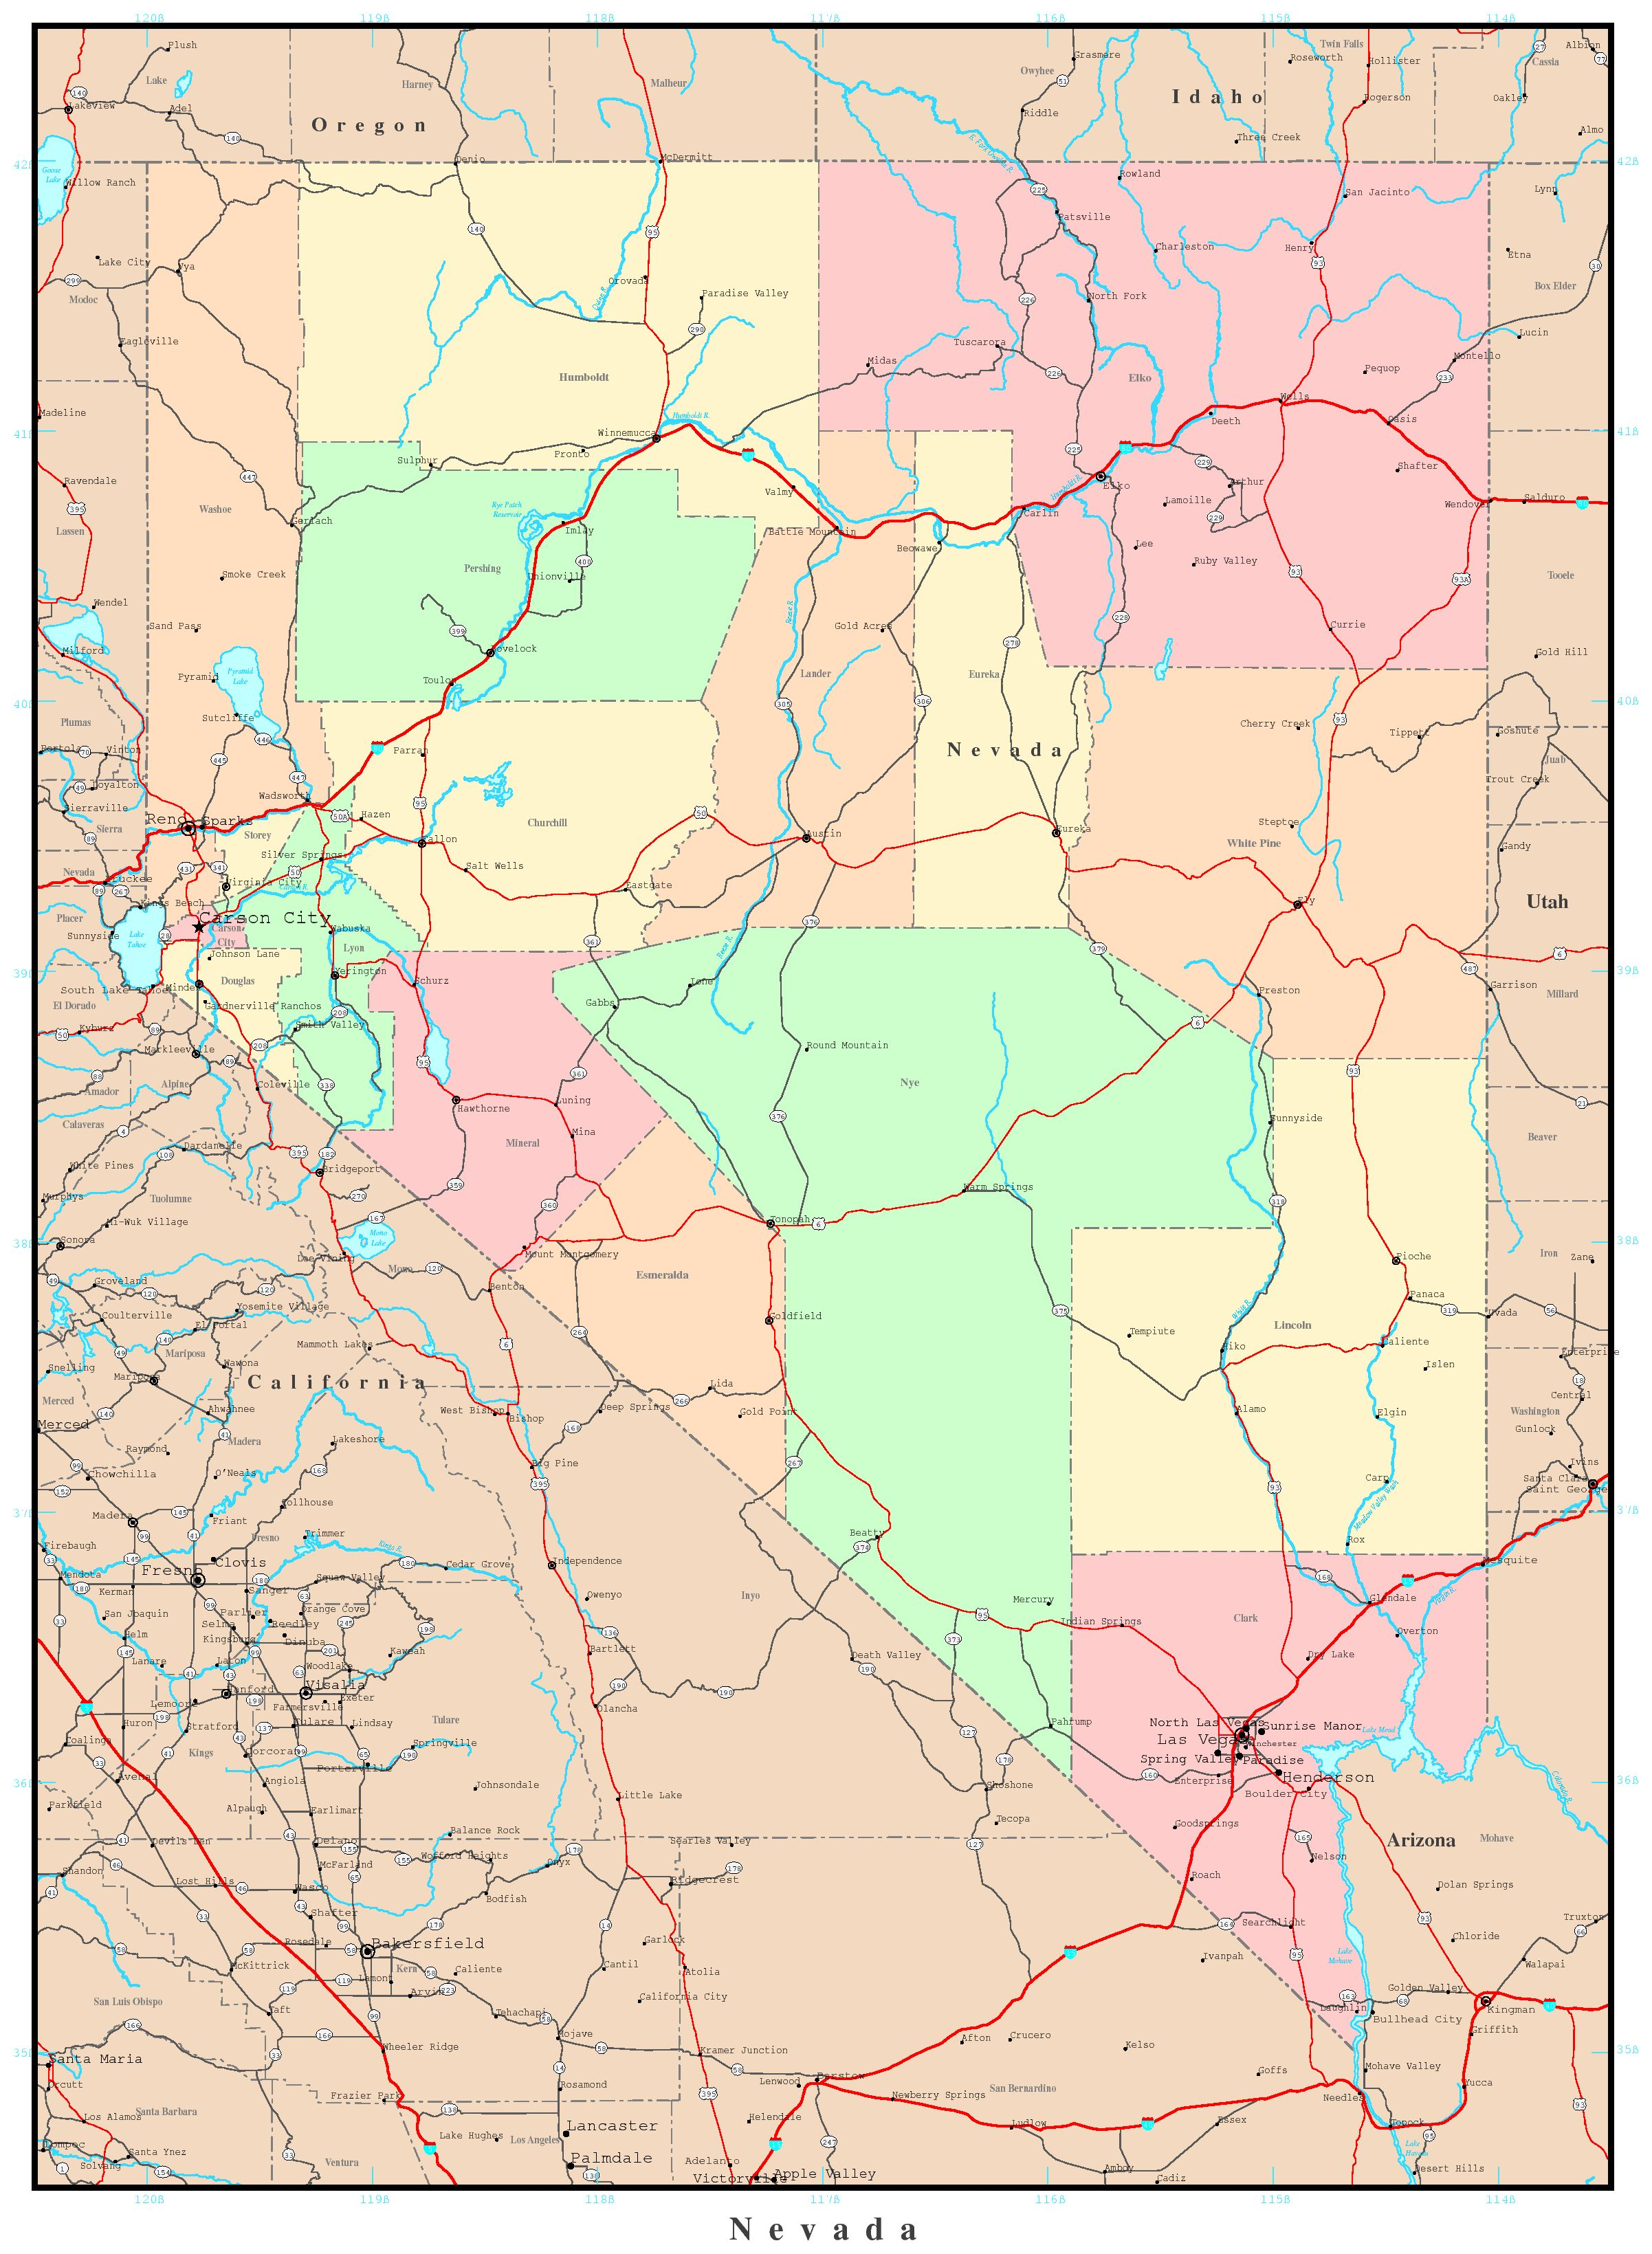 Nevada Political Map - Maps of nevada